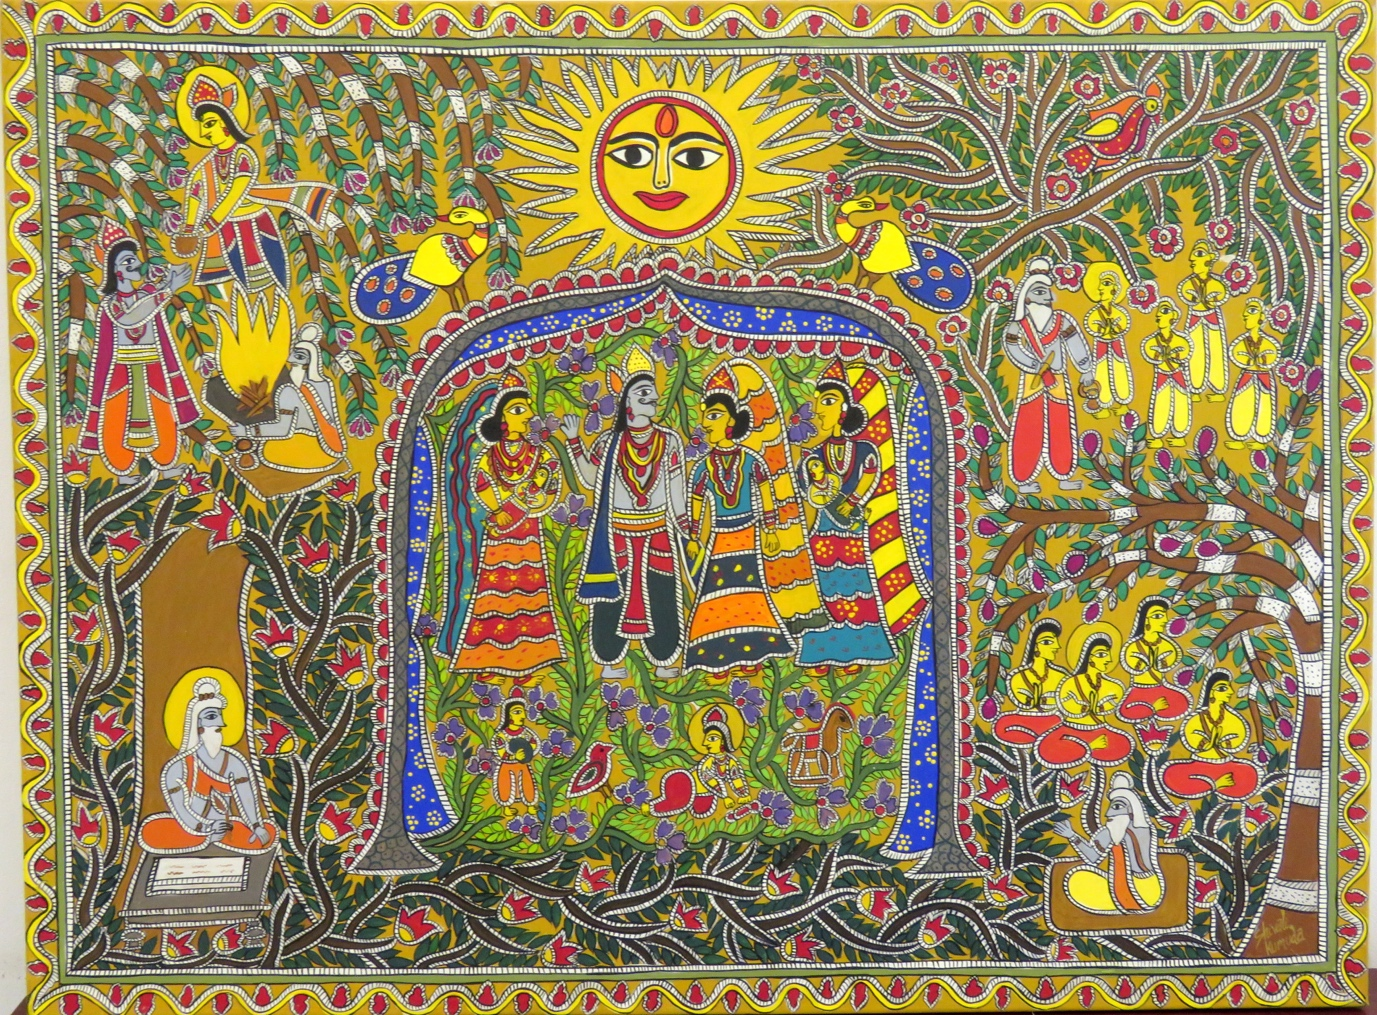 Among the art forms to be explored is a colourful and vibrant art called Madhubani, a school of folk art that originated in the North Eastern regions of India. Photo Courtesy: Stroke Arts